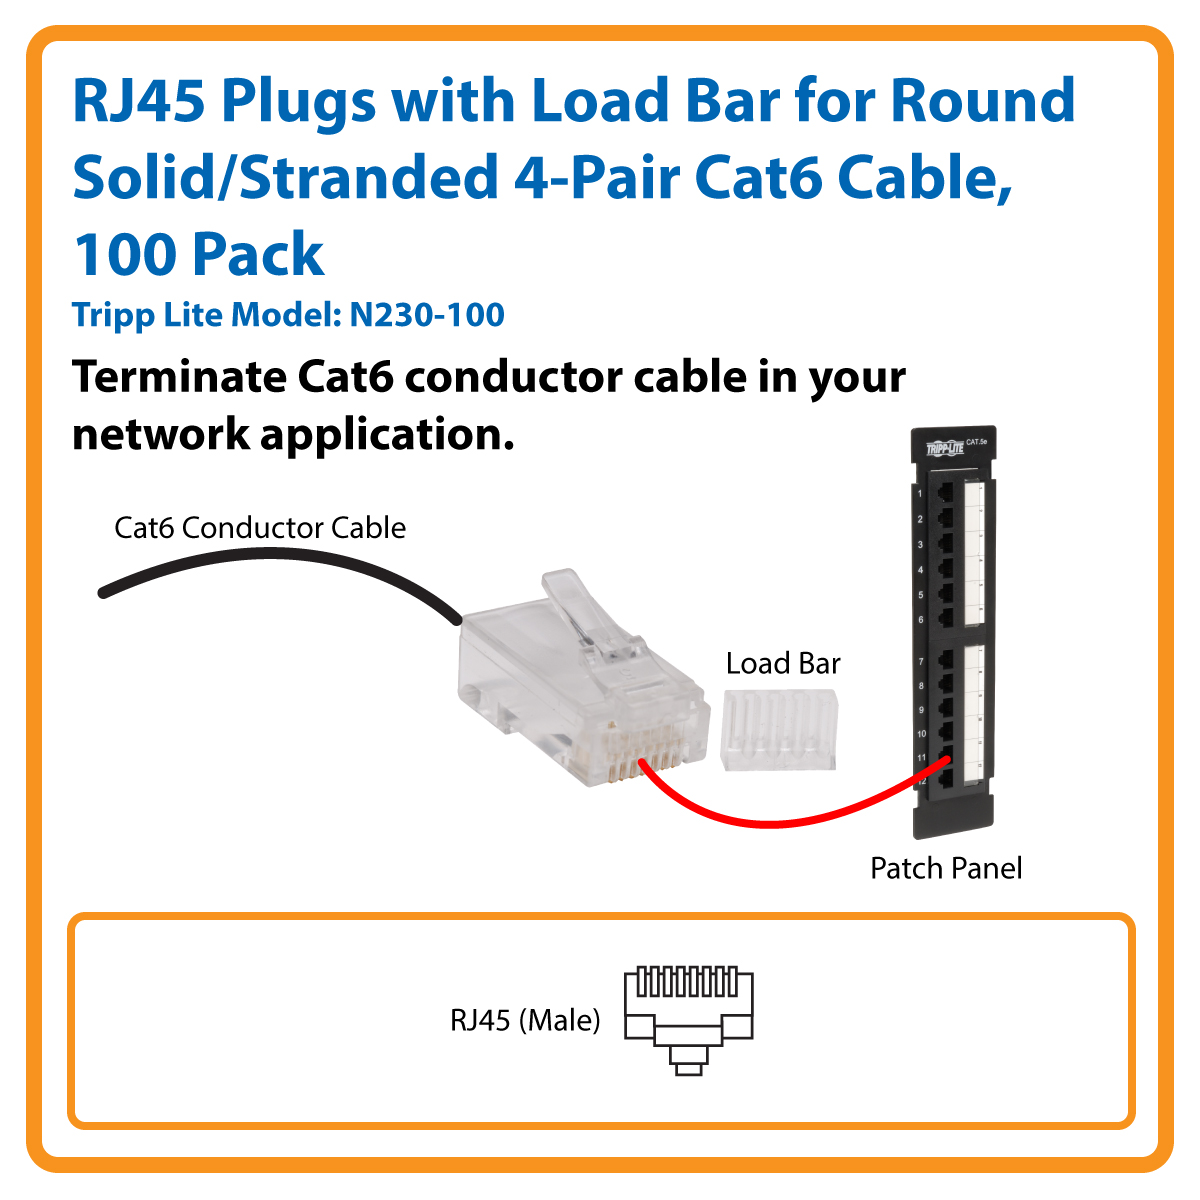 Tripp Lite Cat6 Gigabit Rj45 Modular Connector Plug W Load Bar 100 Wiring Diagram On Hi Power Lightning Protector Jacks Plugs With Bars For Round Solid Stranded 4 Pair Cable